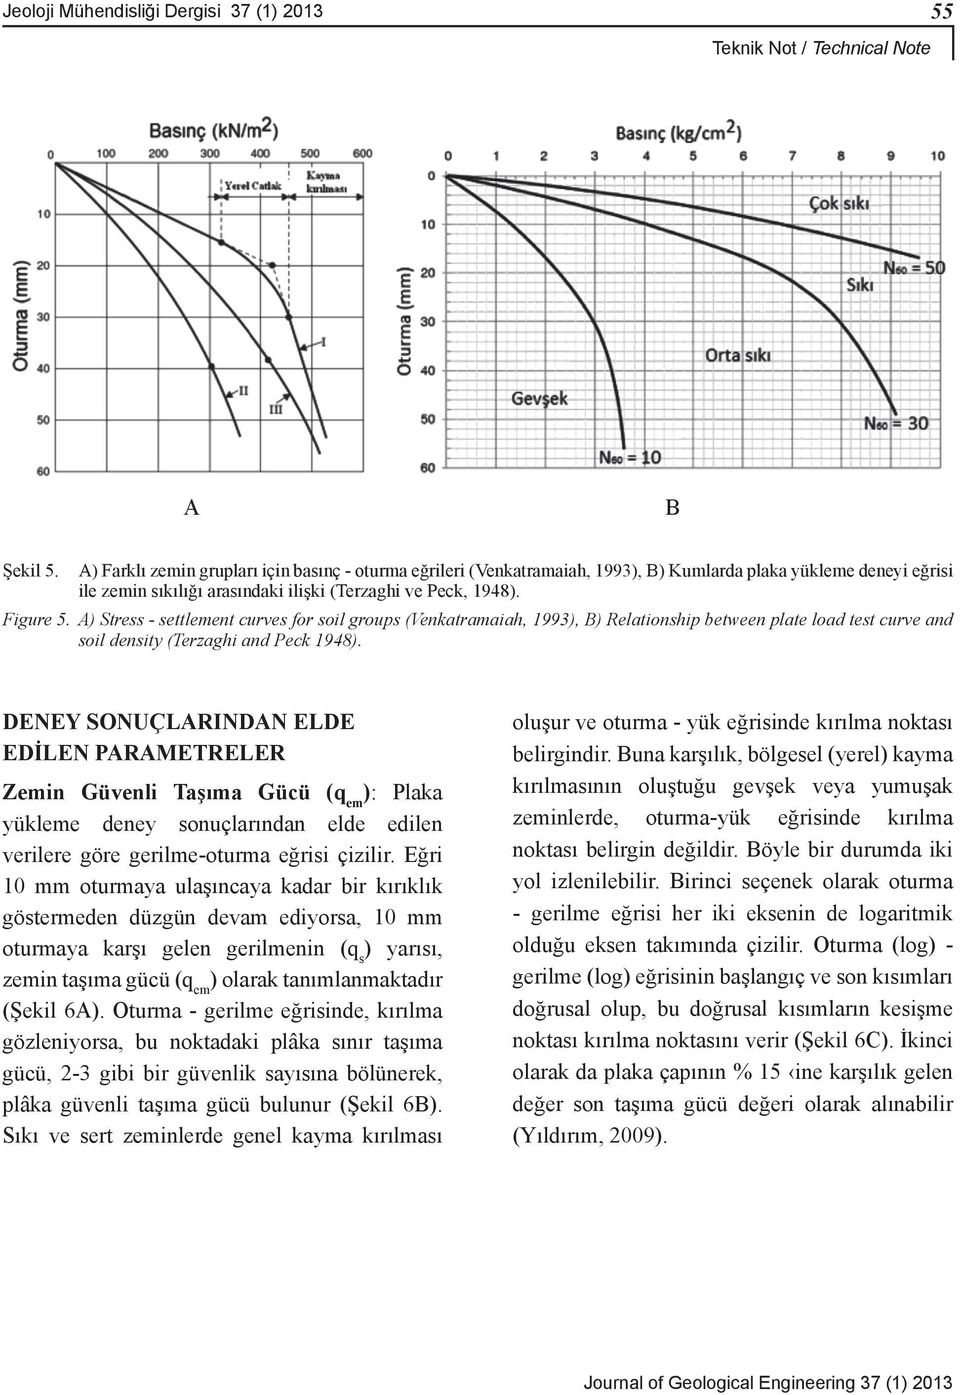 A) Stress - settlement curves for soil groups (Venkatramaiah, 1993), B) Relationship between plate load test curve and soil density (Terzaghi and Peck 1948).